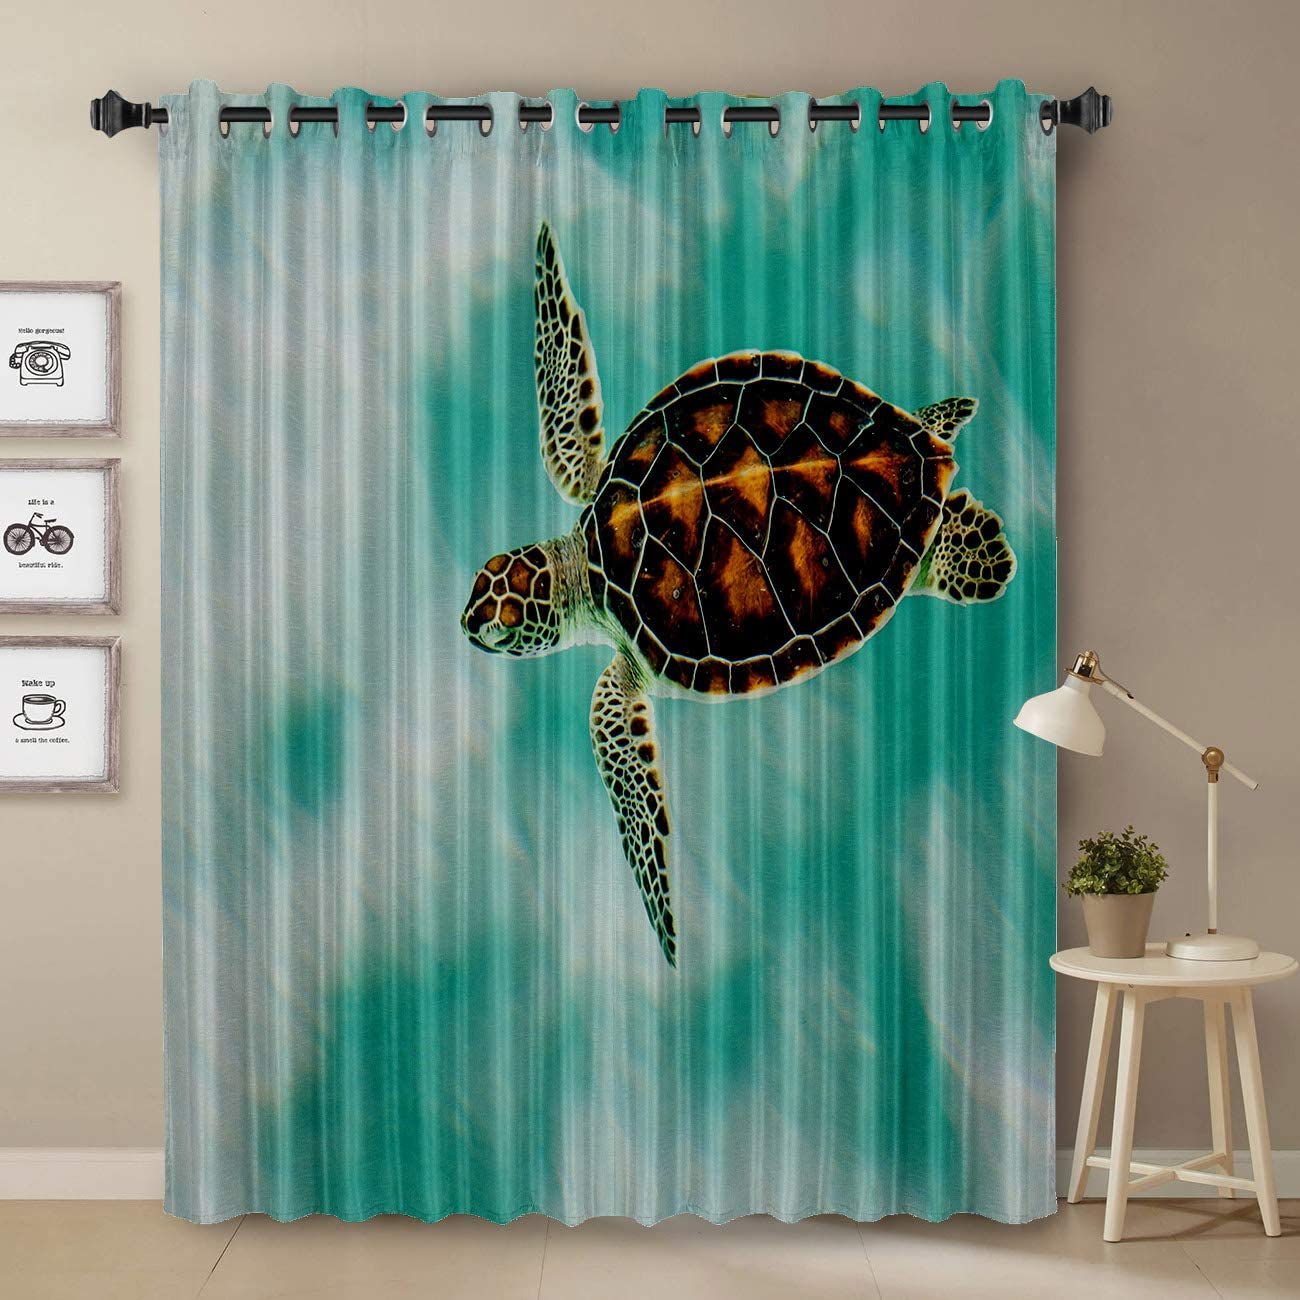 T H Home Custom Art Panel Sea Turtle Blackout Curtain by, Ocean Animal Art Decor Window Draperies Curtains for Apartment Bedroom Living Room Kitchen Cafe Office, 52 W by 90 L